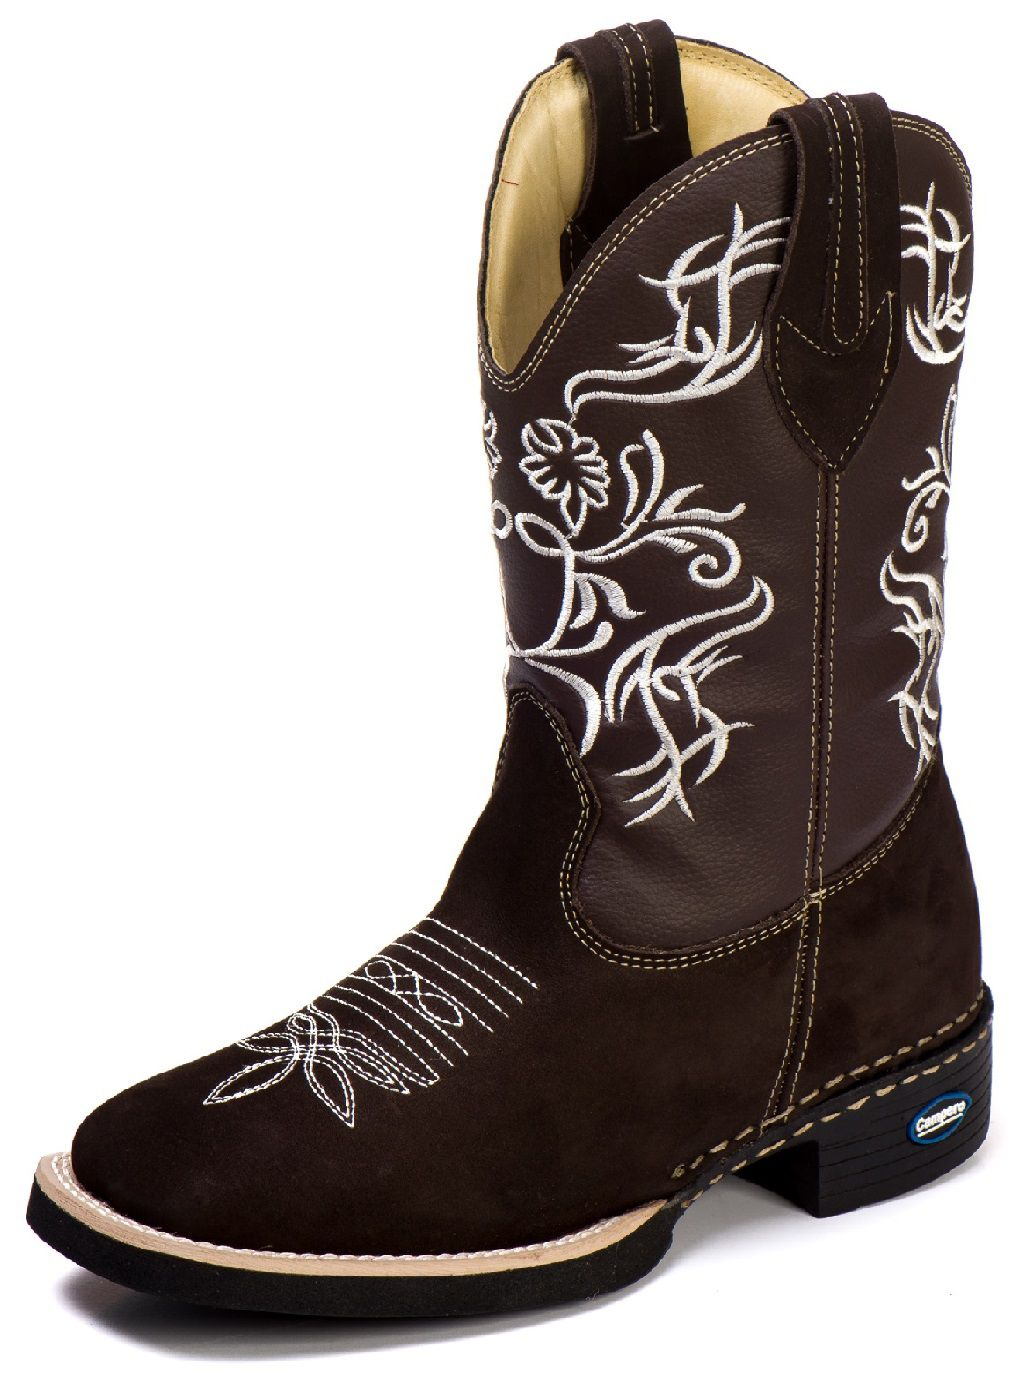 6950cd5672 BOTA TEXANA CANO LONGO MASCULINA - Shop Do Calçado